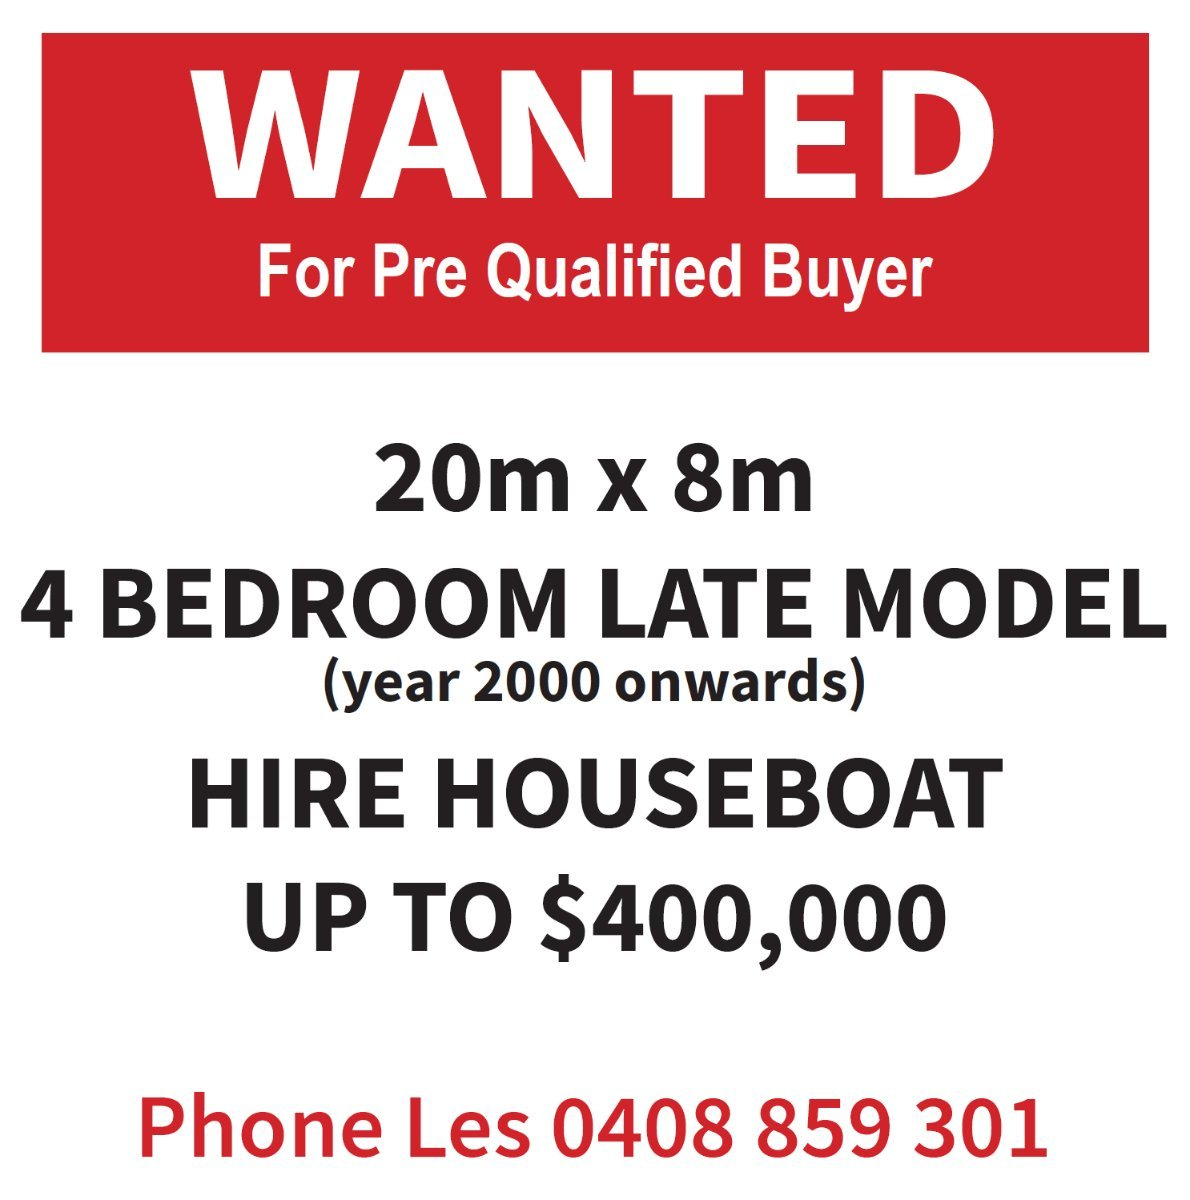 WANTED! HIRE HOUSEBOAT